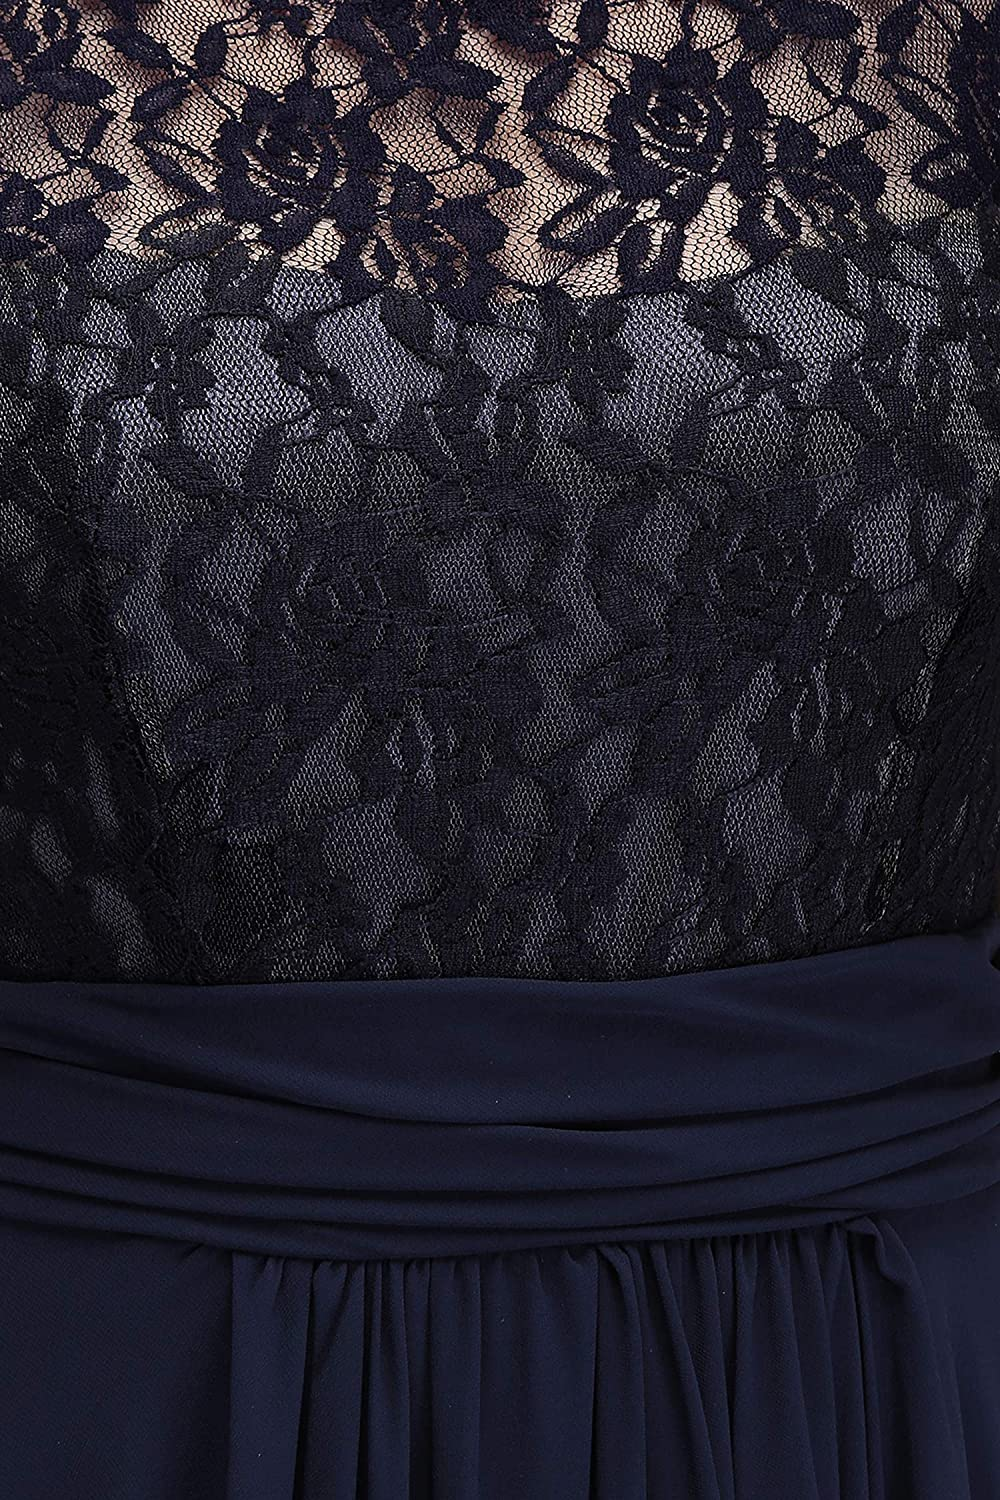 Evening Dress Sleeveless Lace Chiffon Evening Dresses Long Party Dresses Formal Gown,Navy Blue,6